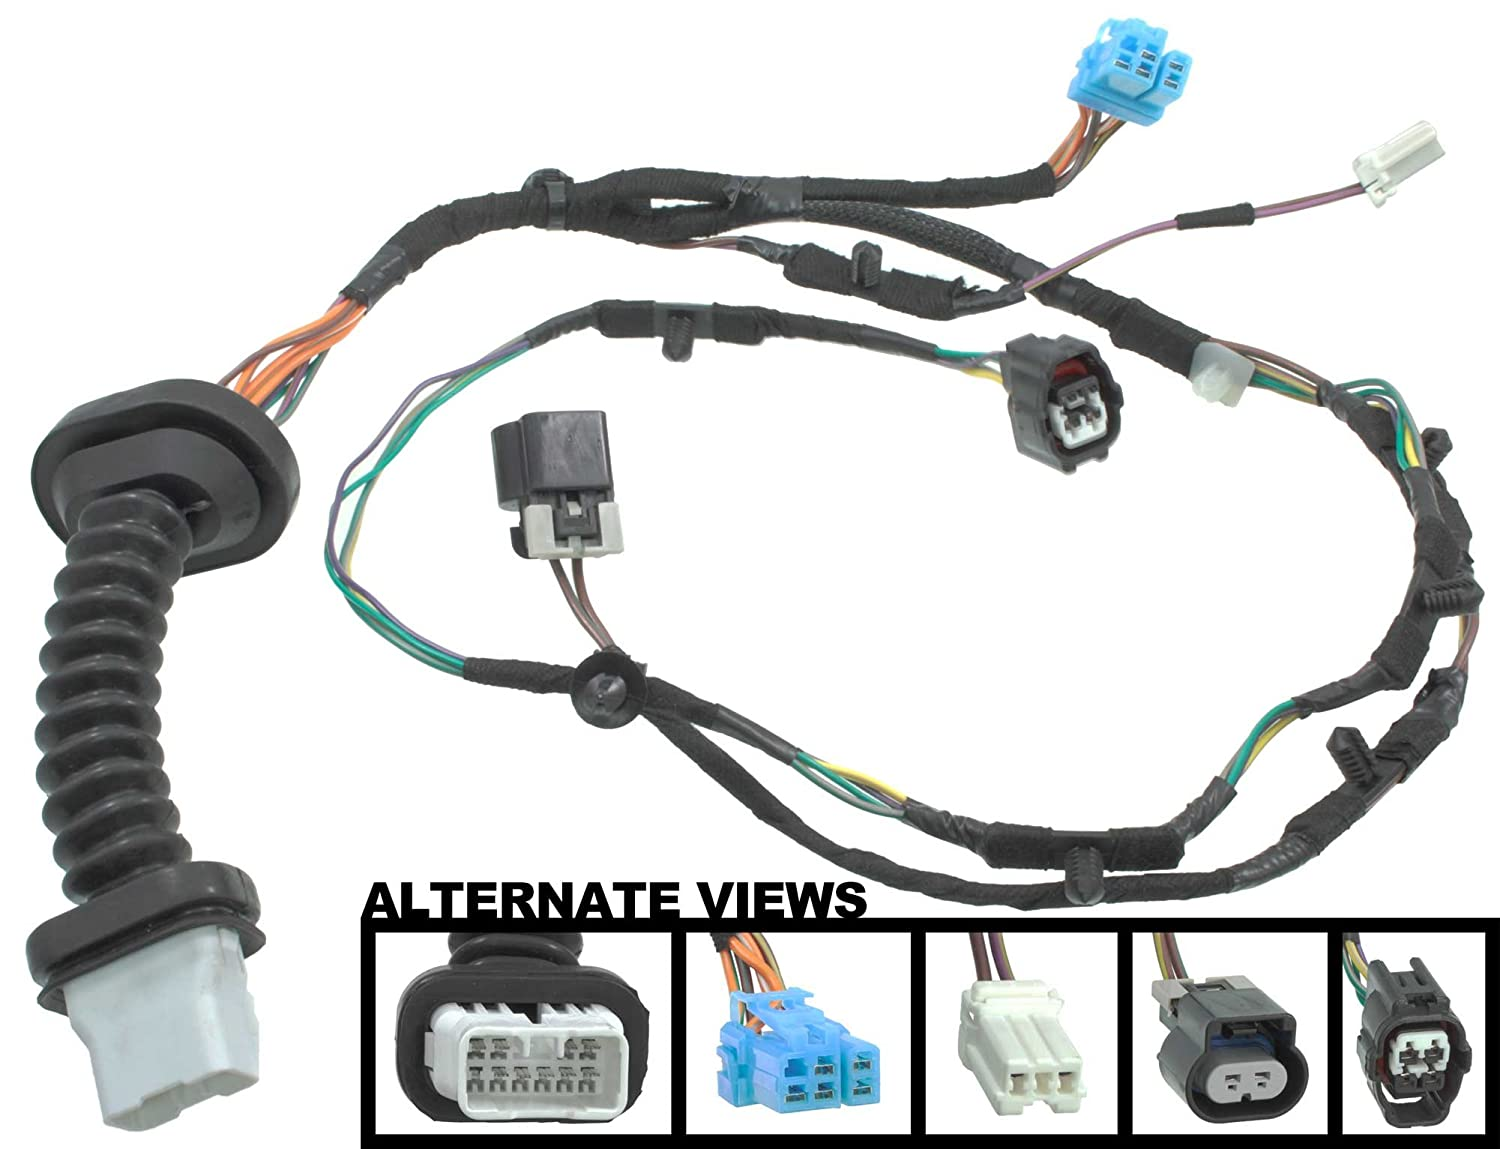 71fJrC9anCL._SL1500_ amazon com apdty 756617 power door lock wiring pigtail connector door wiring harness at aneh.co